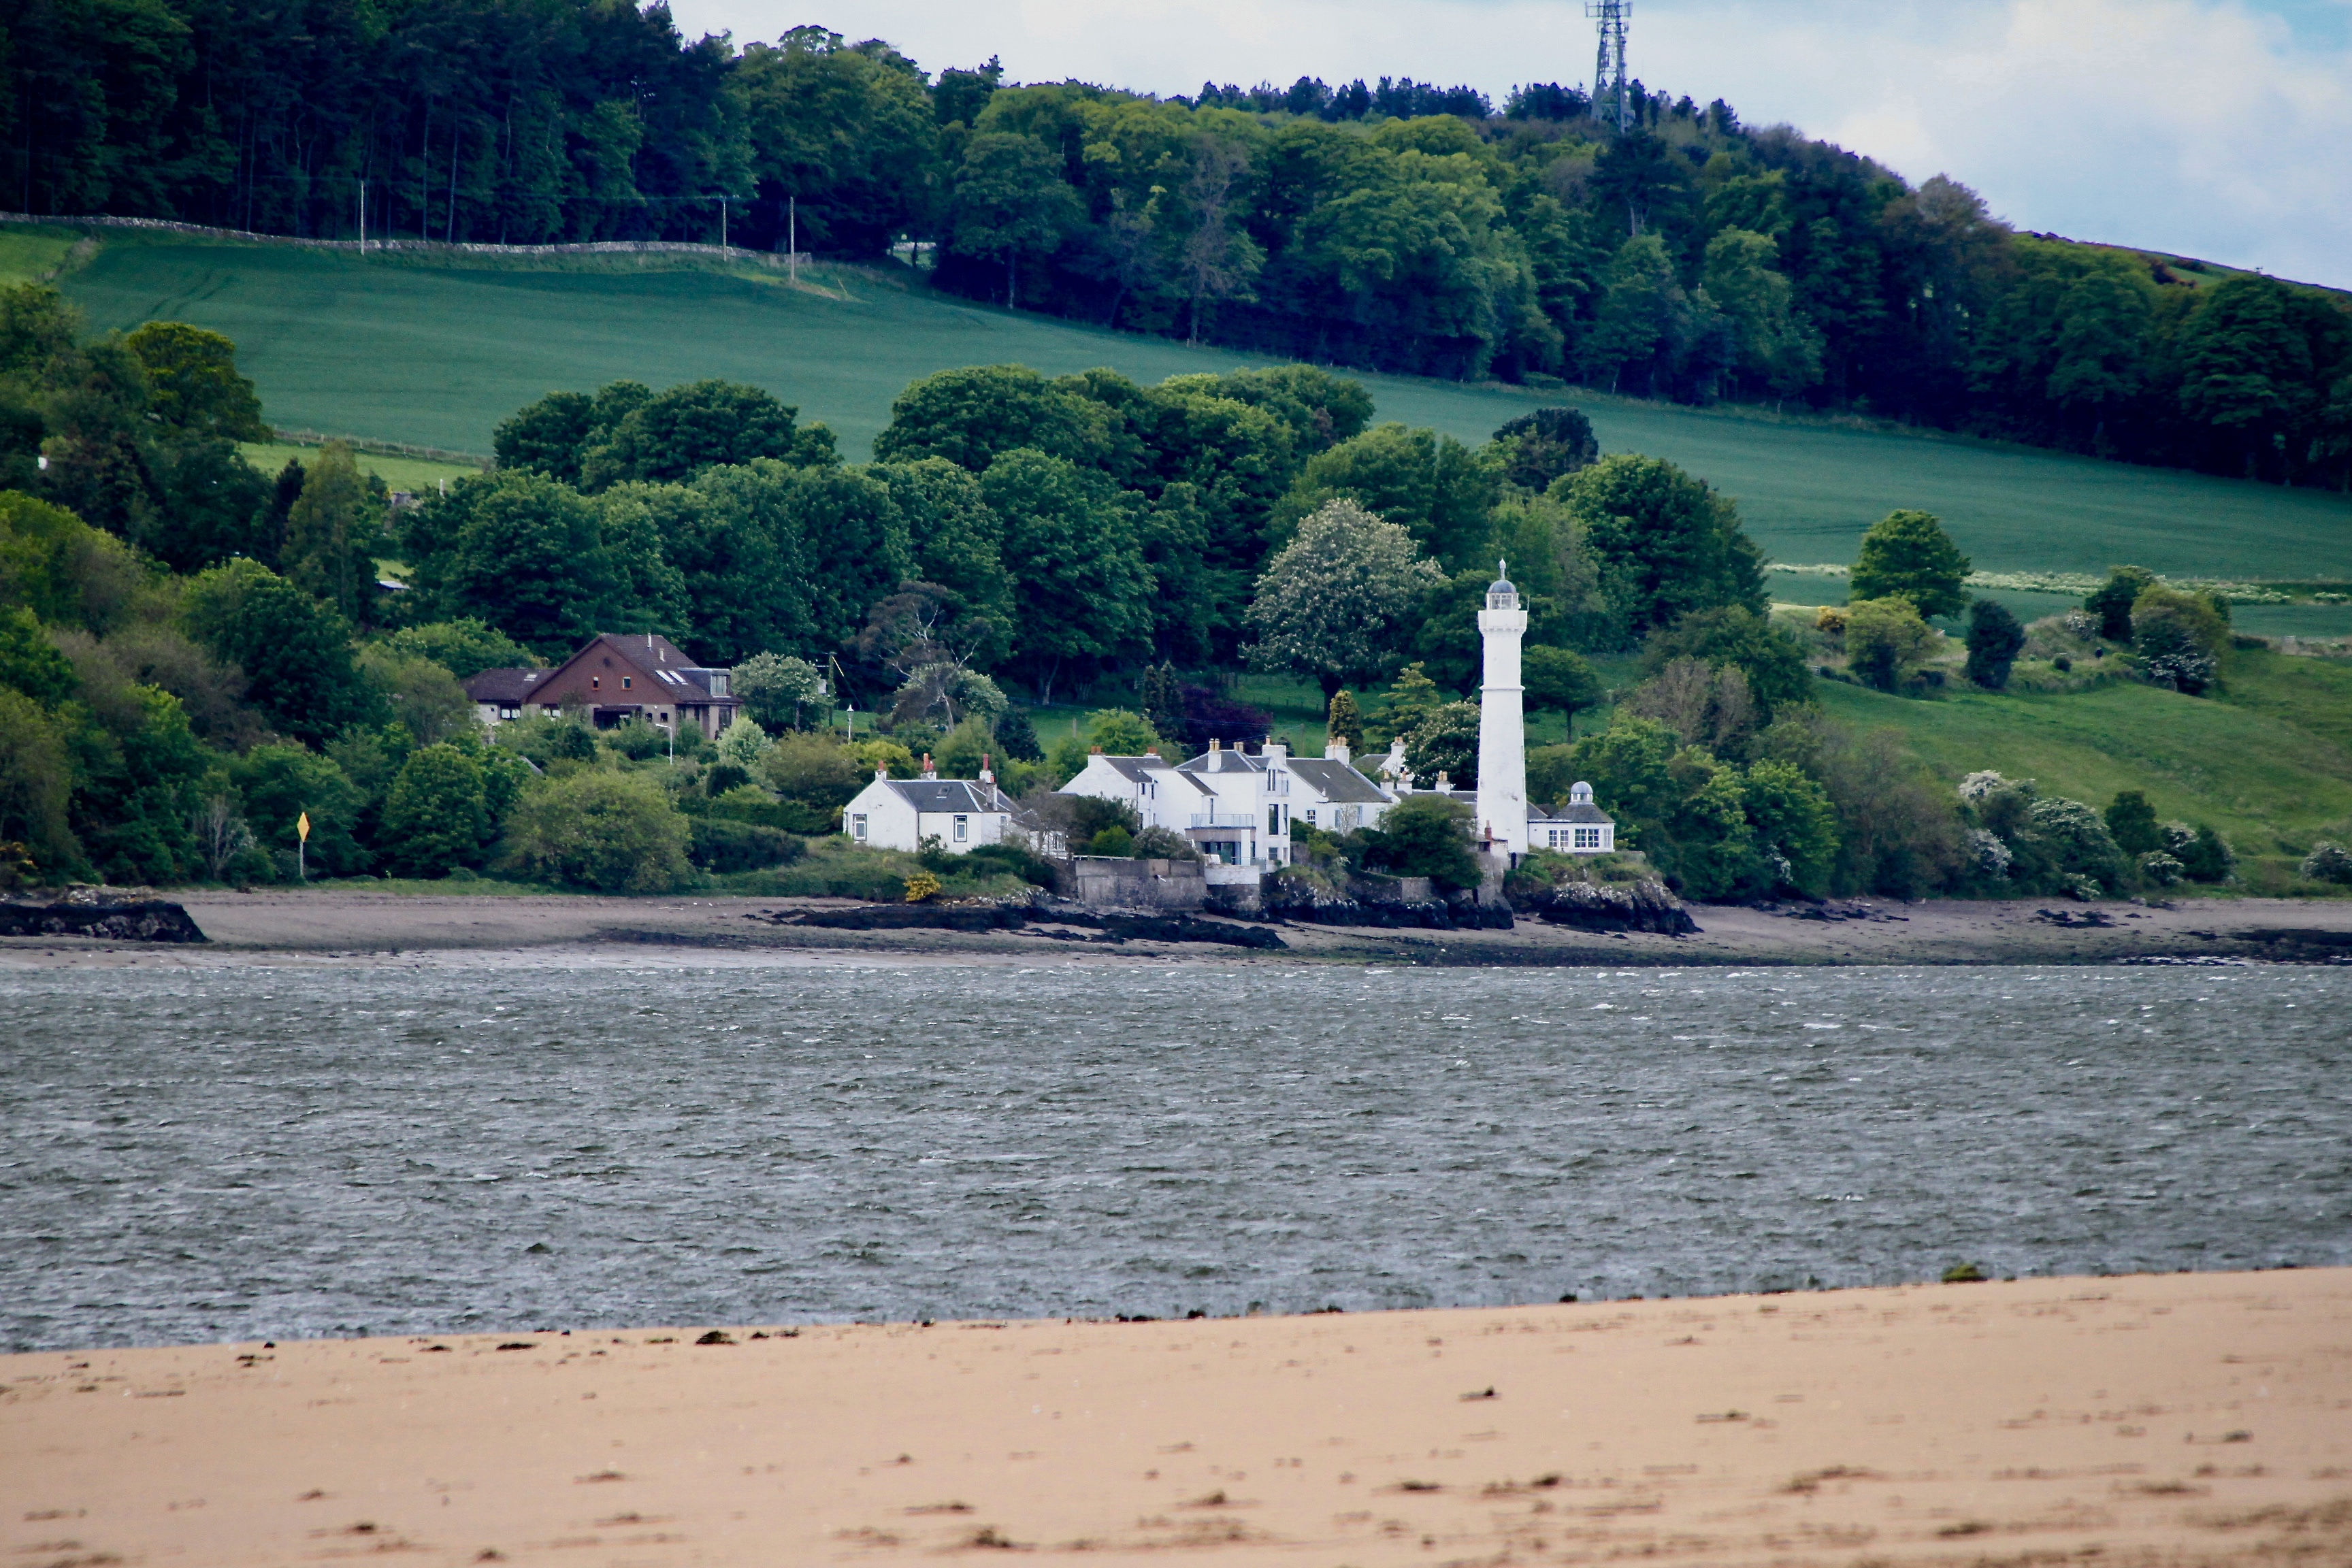 Tayport lighthouse by Jez Braithwaite